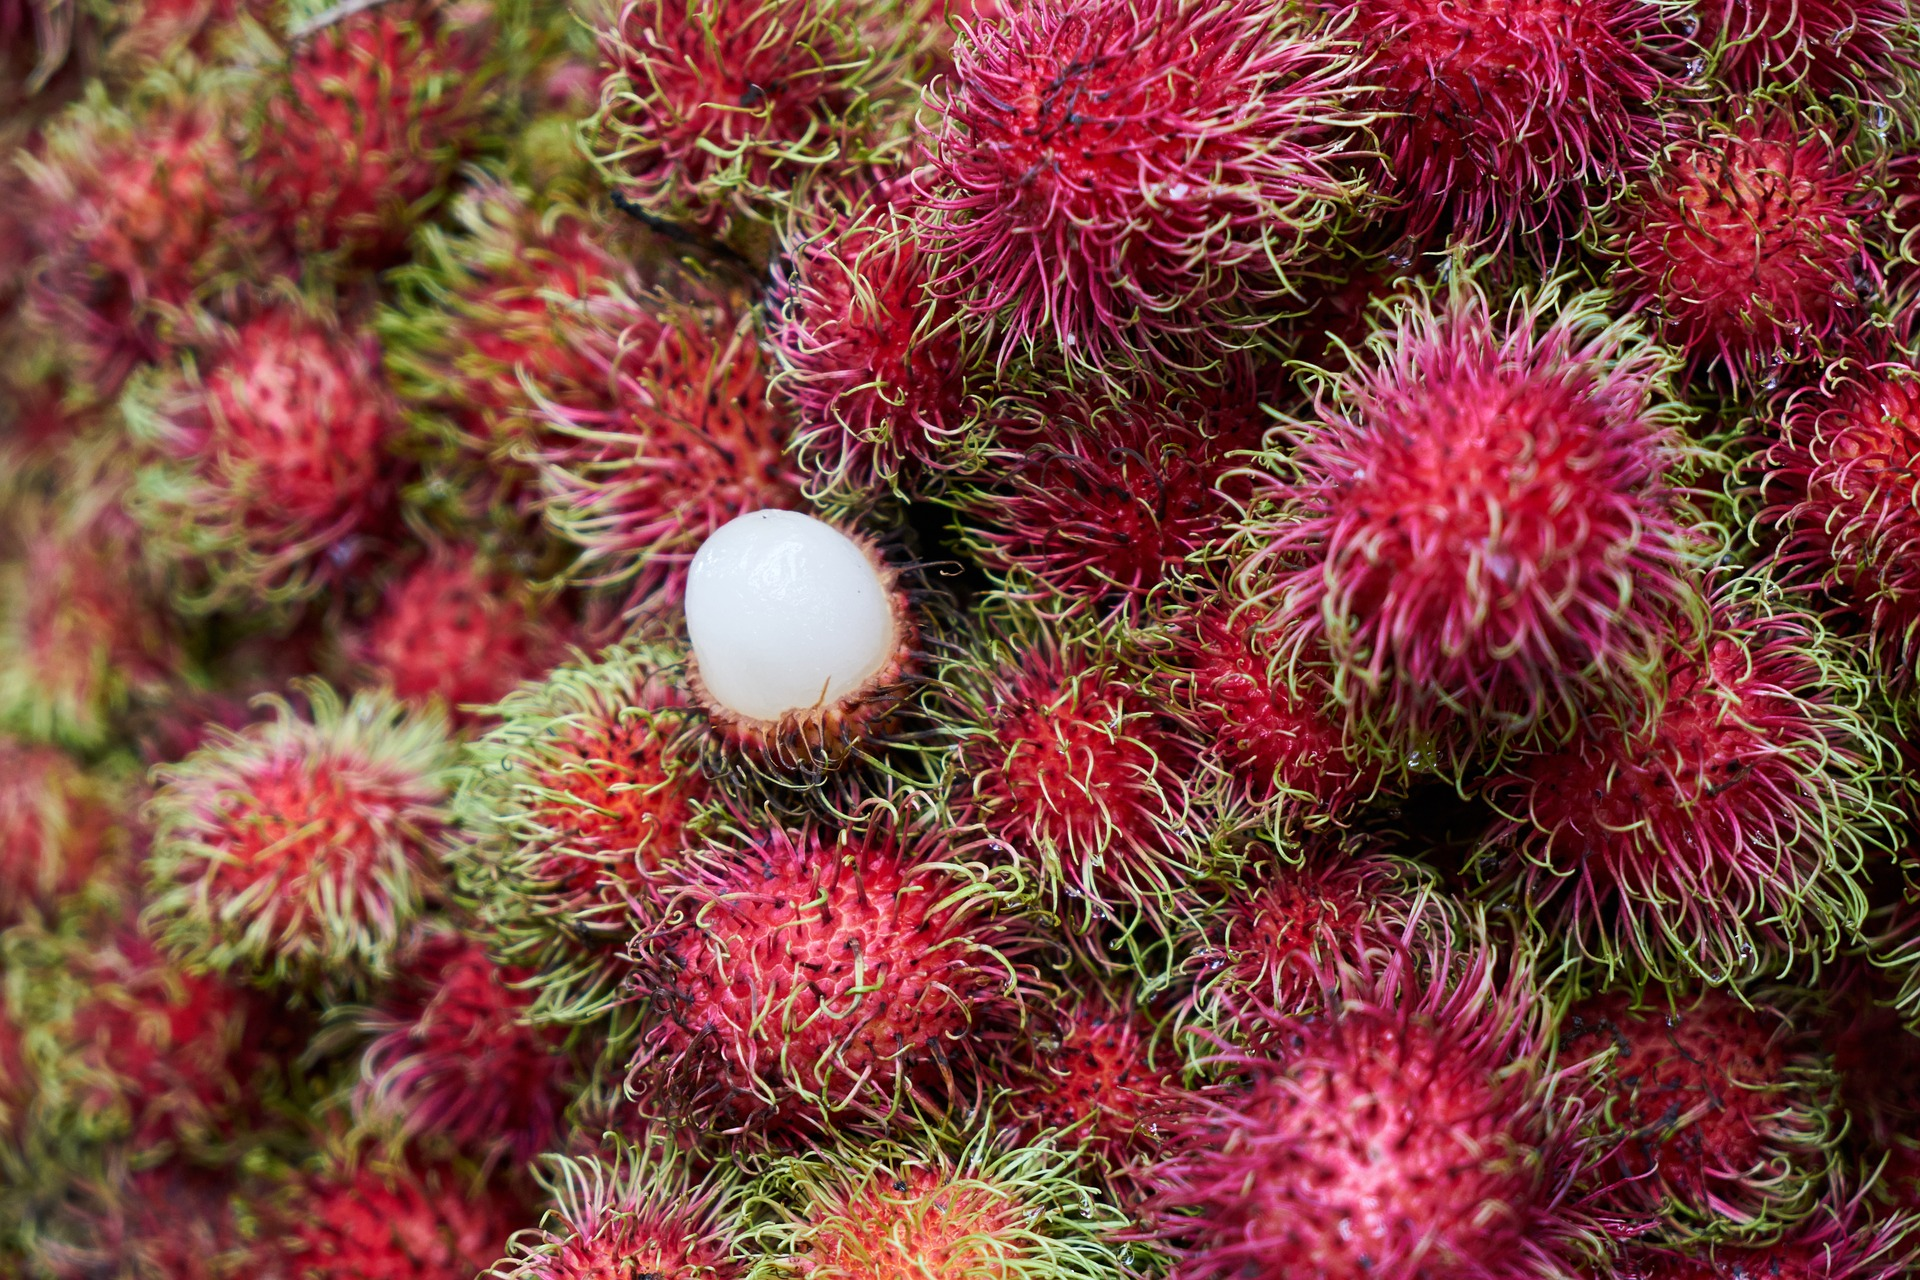 Image of fruit in Malaysia